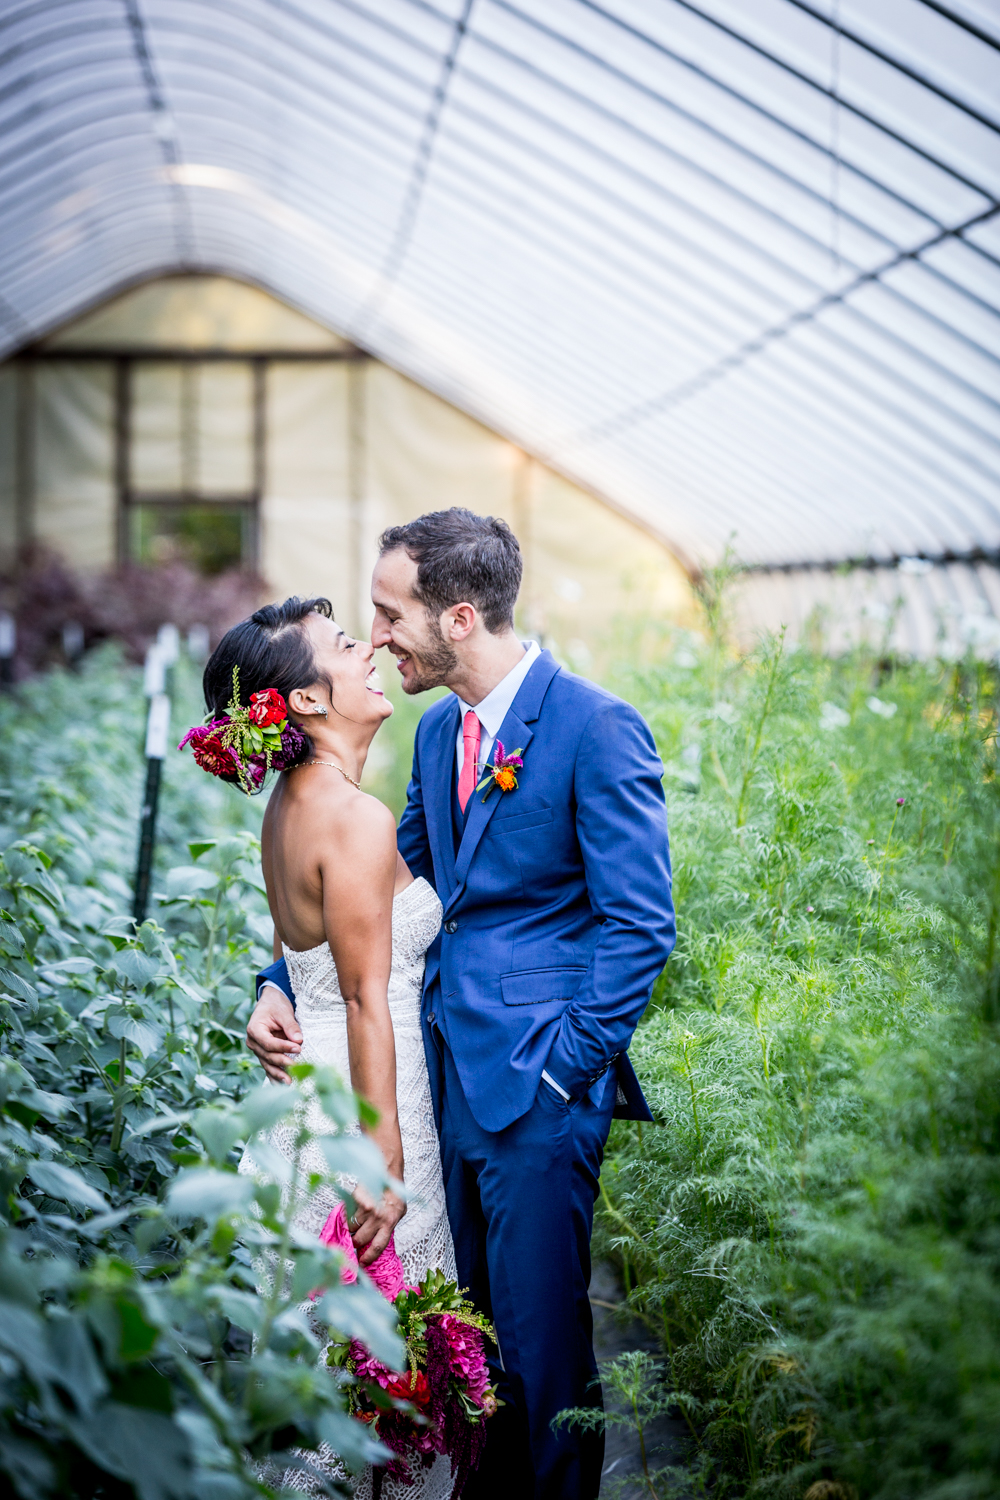 Lis Christy weddings flower farm-53.jpg